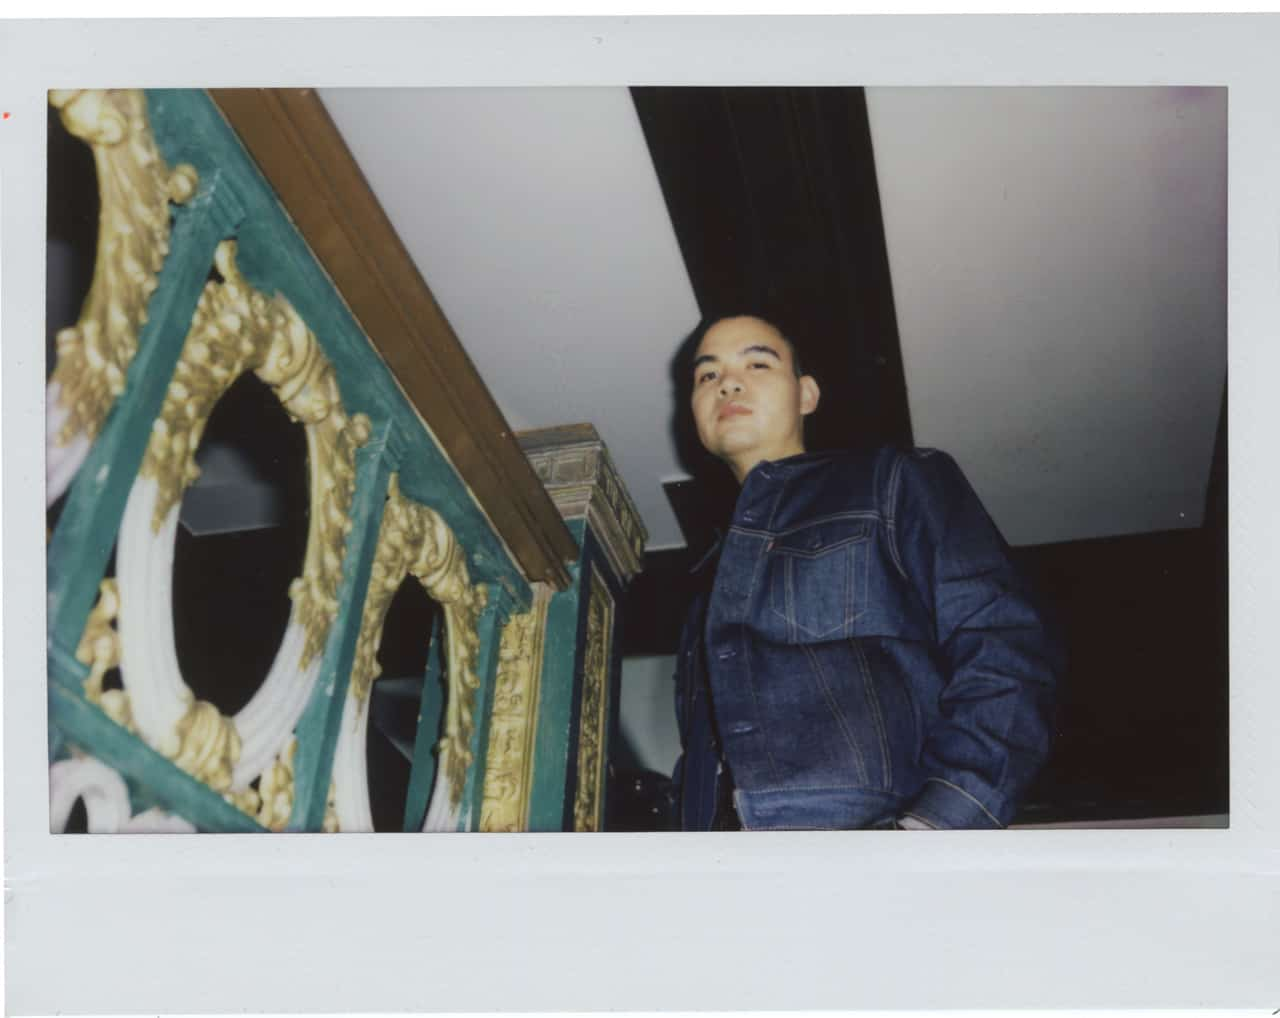 Christopher Cabalona Polaroid